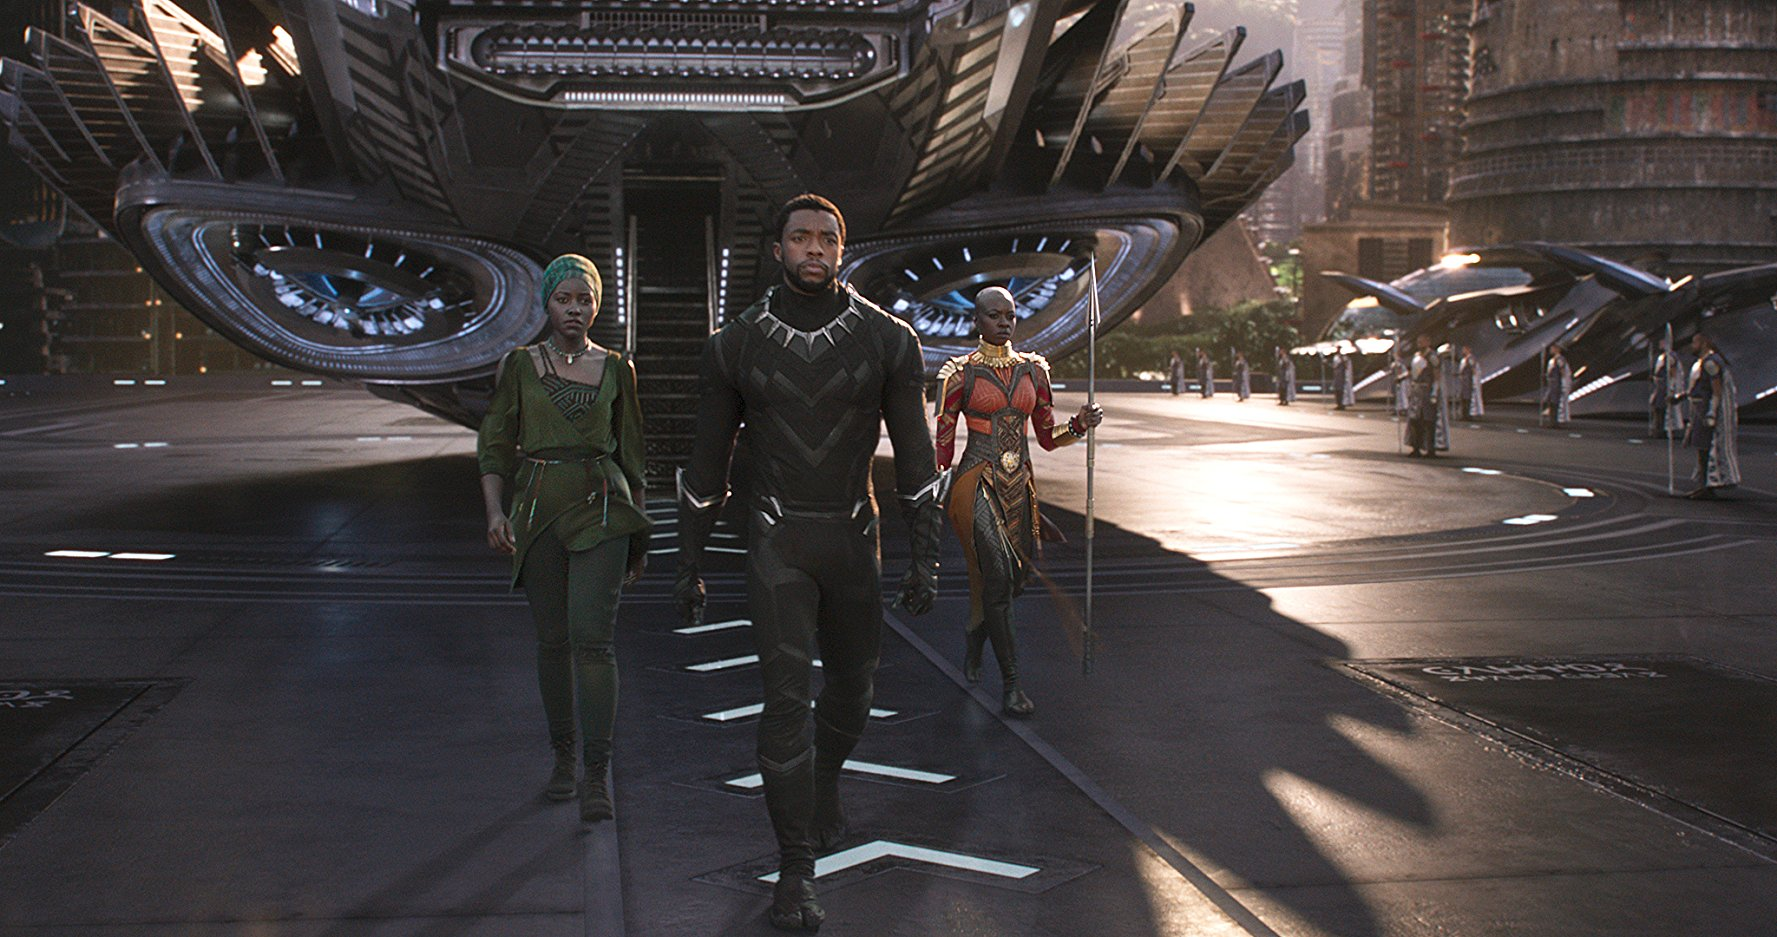 What can African Nations learn from Marvel's Black Panther